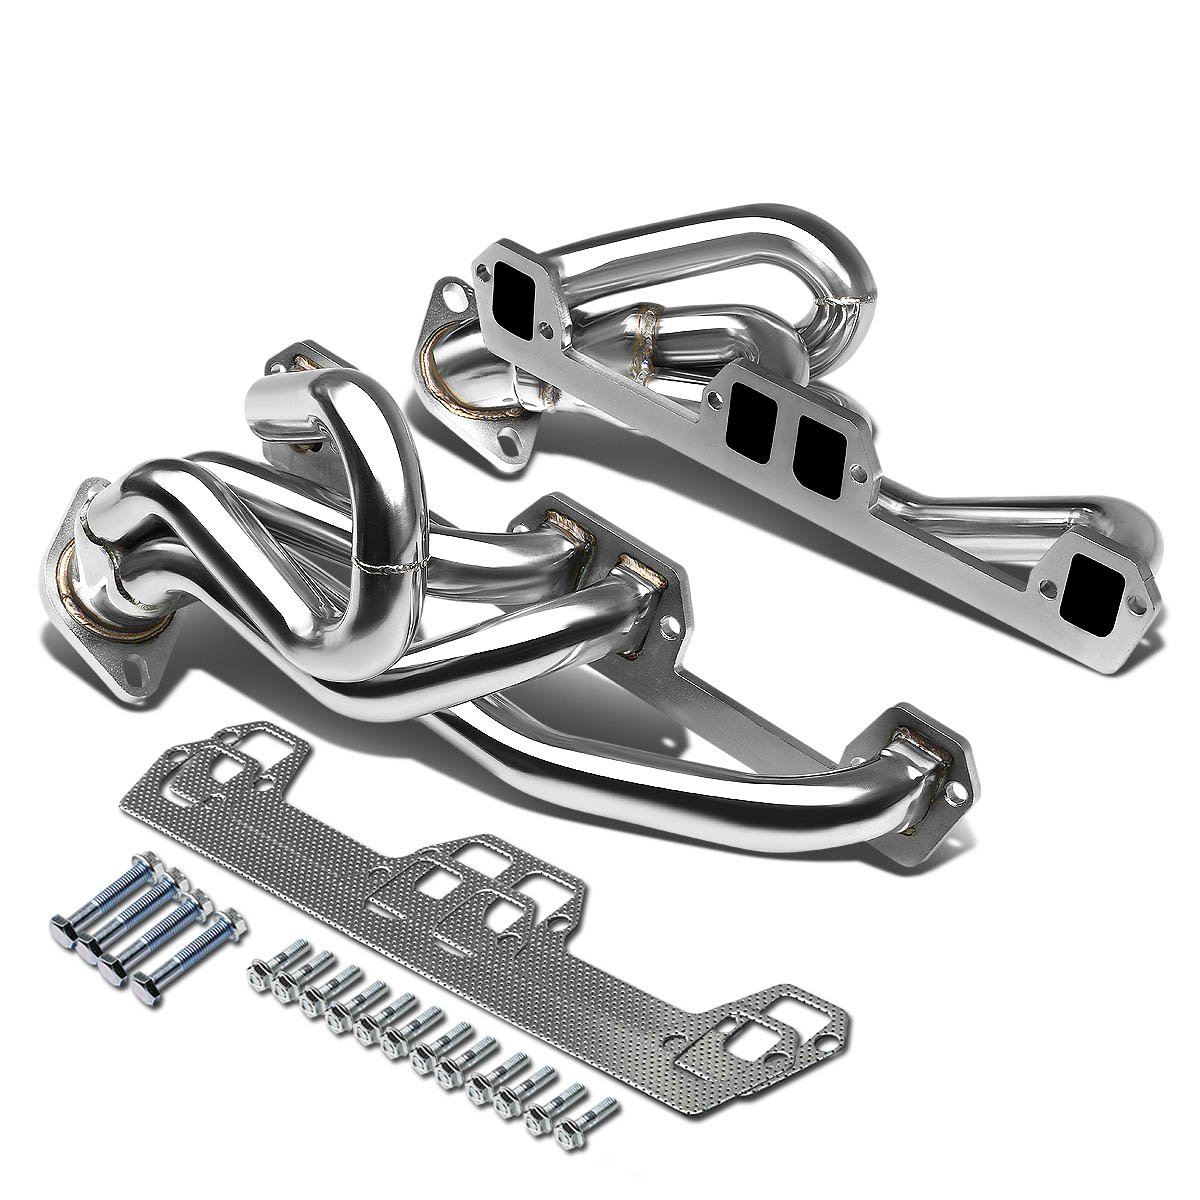 For Dodge Ram 1500/2500/3500 4-1 Design 2-PC Stainless Steel Exhaust Header - 5.9L V8